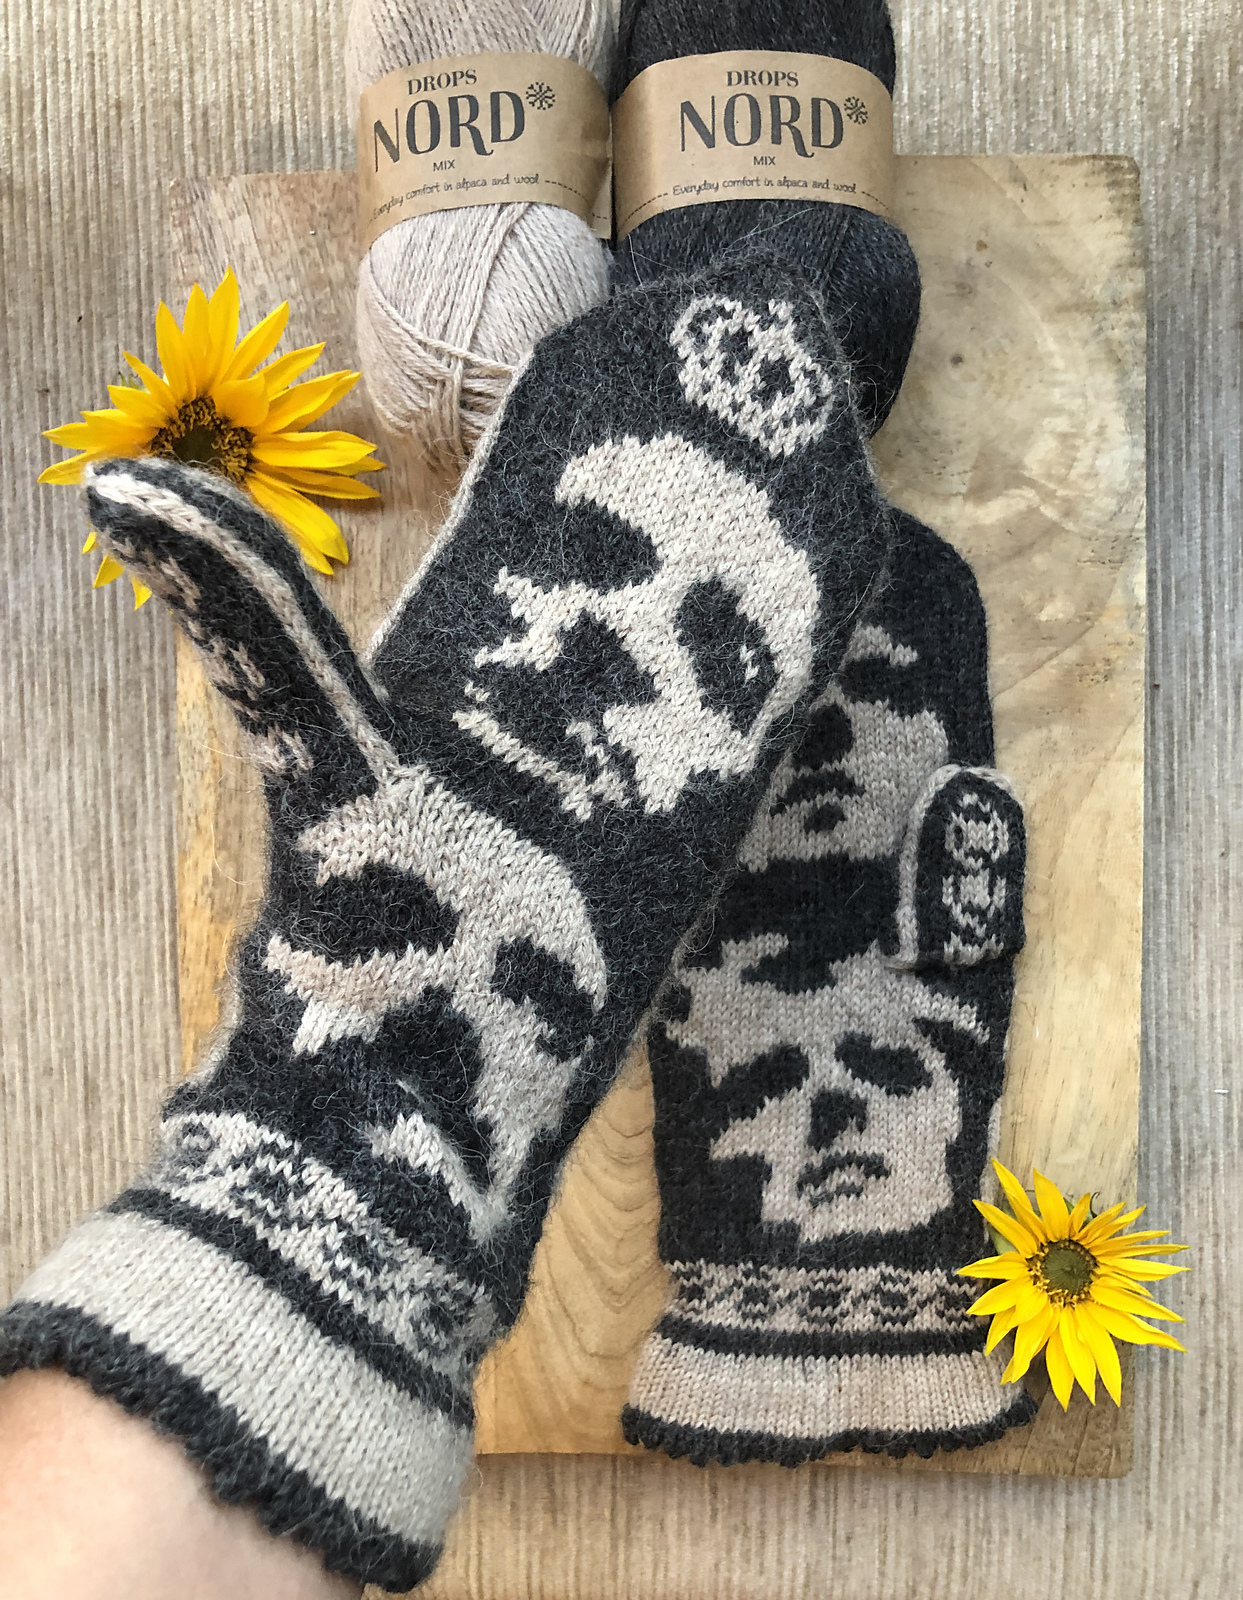 Knit a Pair of Queen-Inspired Mittens, Designed By Lotta Lundin